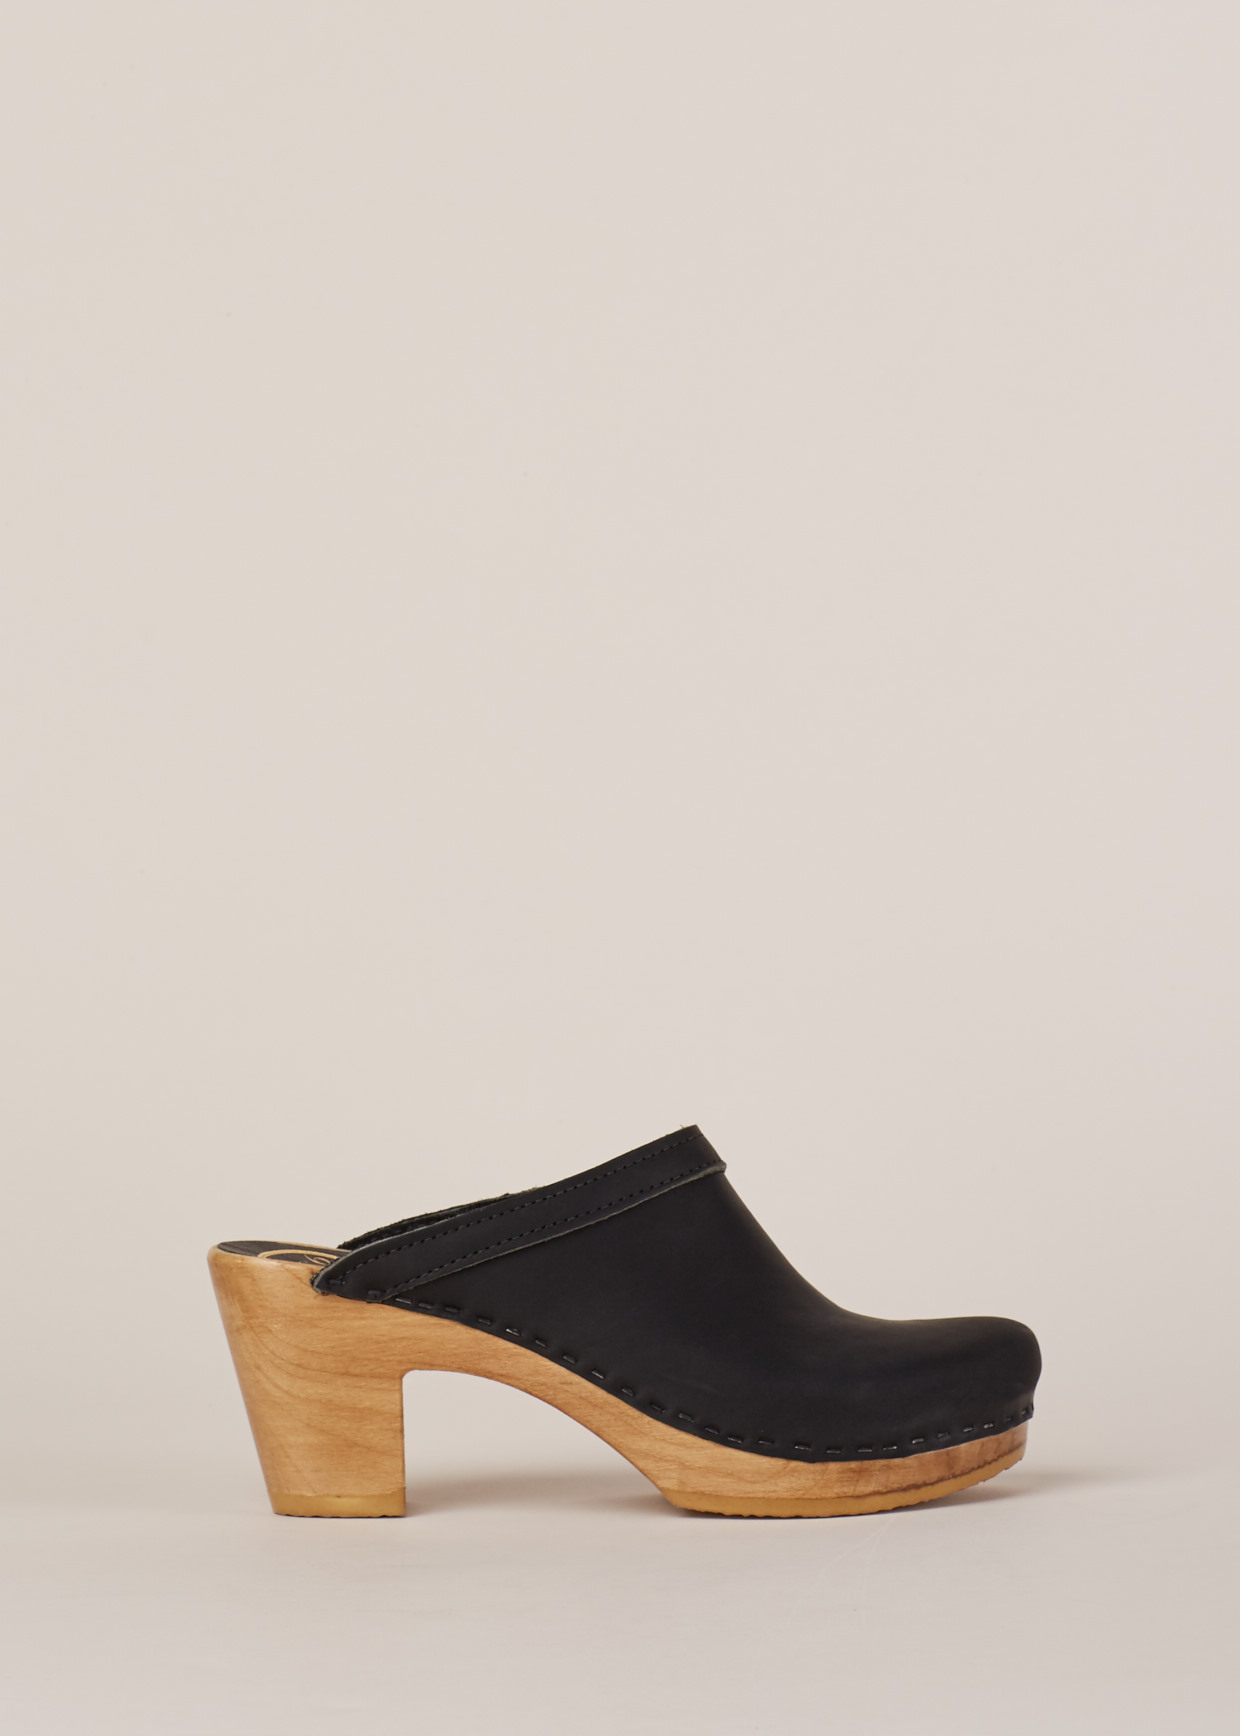 sale cheap online No.6 Leather Clog Mules reliable for sale cheap authentic outlet N6LUhZWyO4